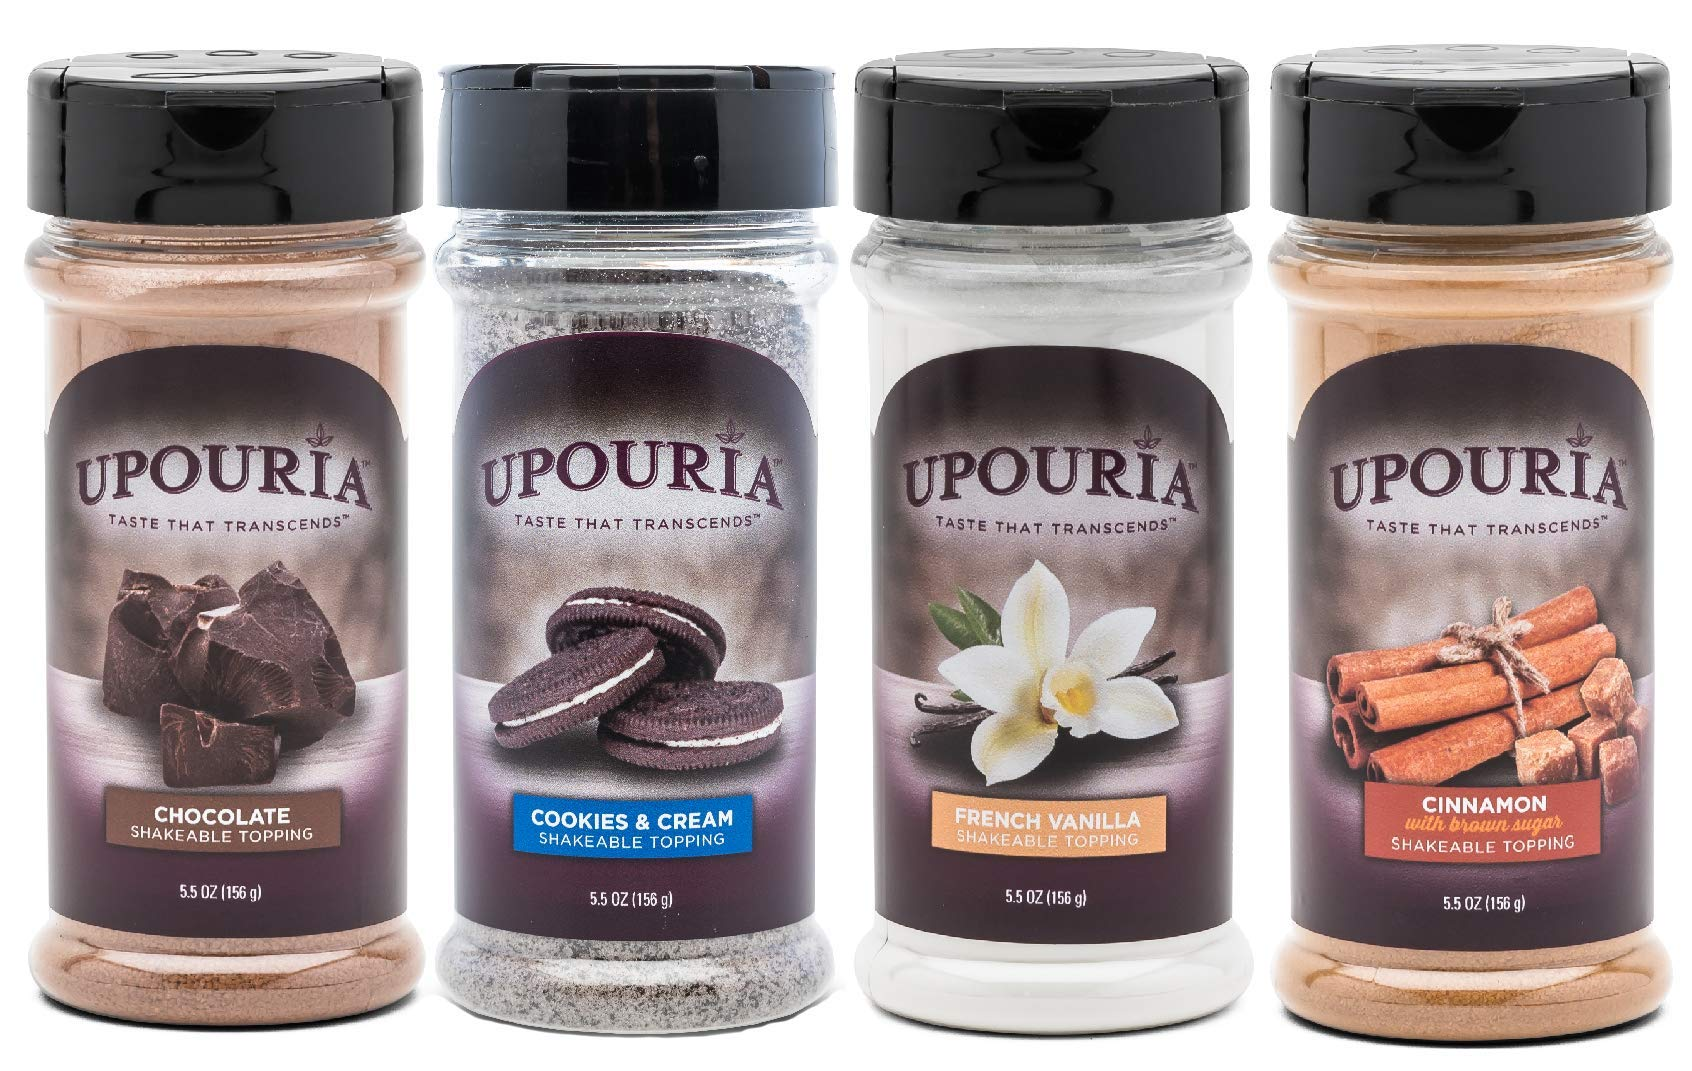 Upouria Coffee Topping Variety Pack - Chocolate, Cookies N Cream, French Vanilla and Cinnamon with Browns Sugar - 5.5 Ounce Shakeable Topping Jars - (Pack of 4) by Sunny Sky (Image #9)